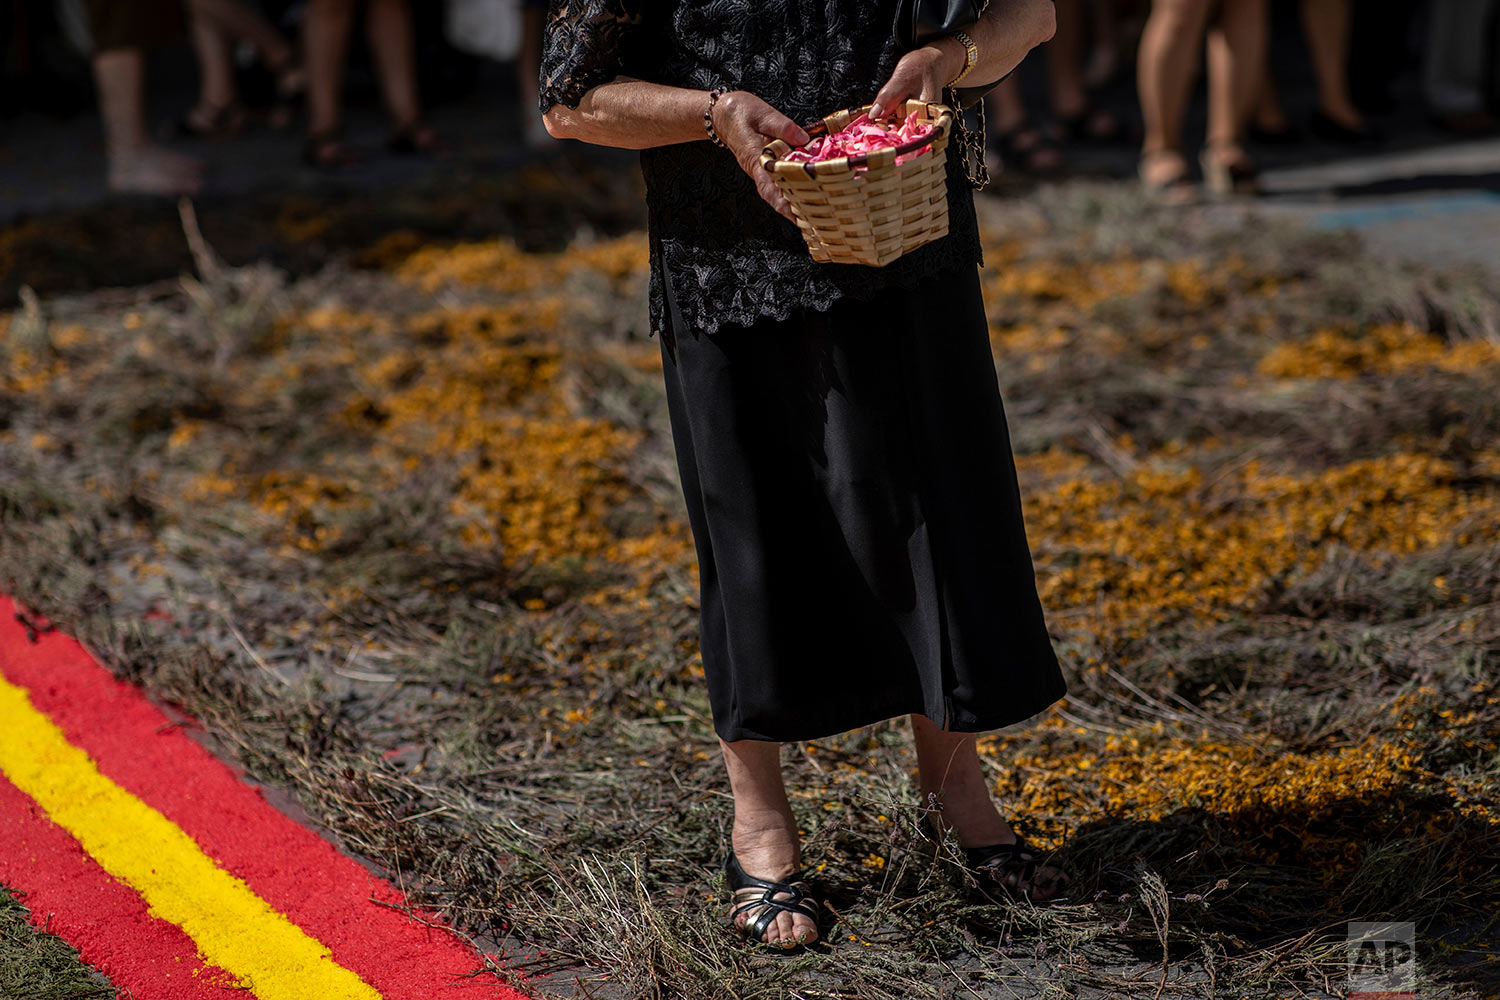 A Catholic worshipper holds a basket with rose petals during the Corpus Christi procession in the village of Bejar, Spain, Sunday, June 23, 2019. (AP Photo/Bernat Armangue)